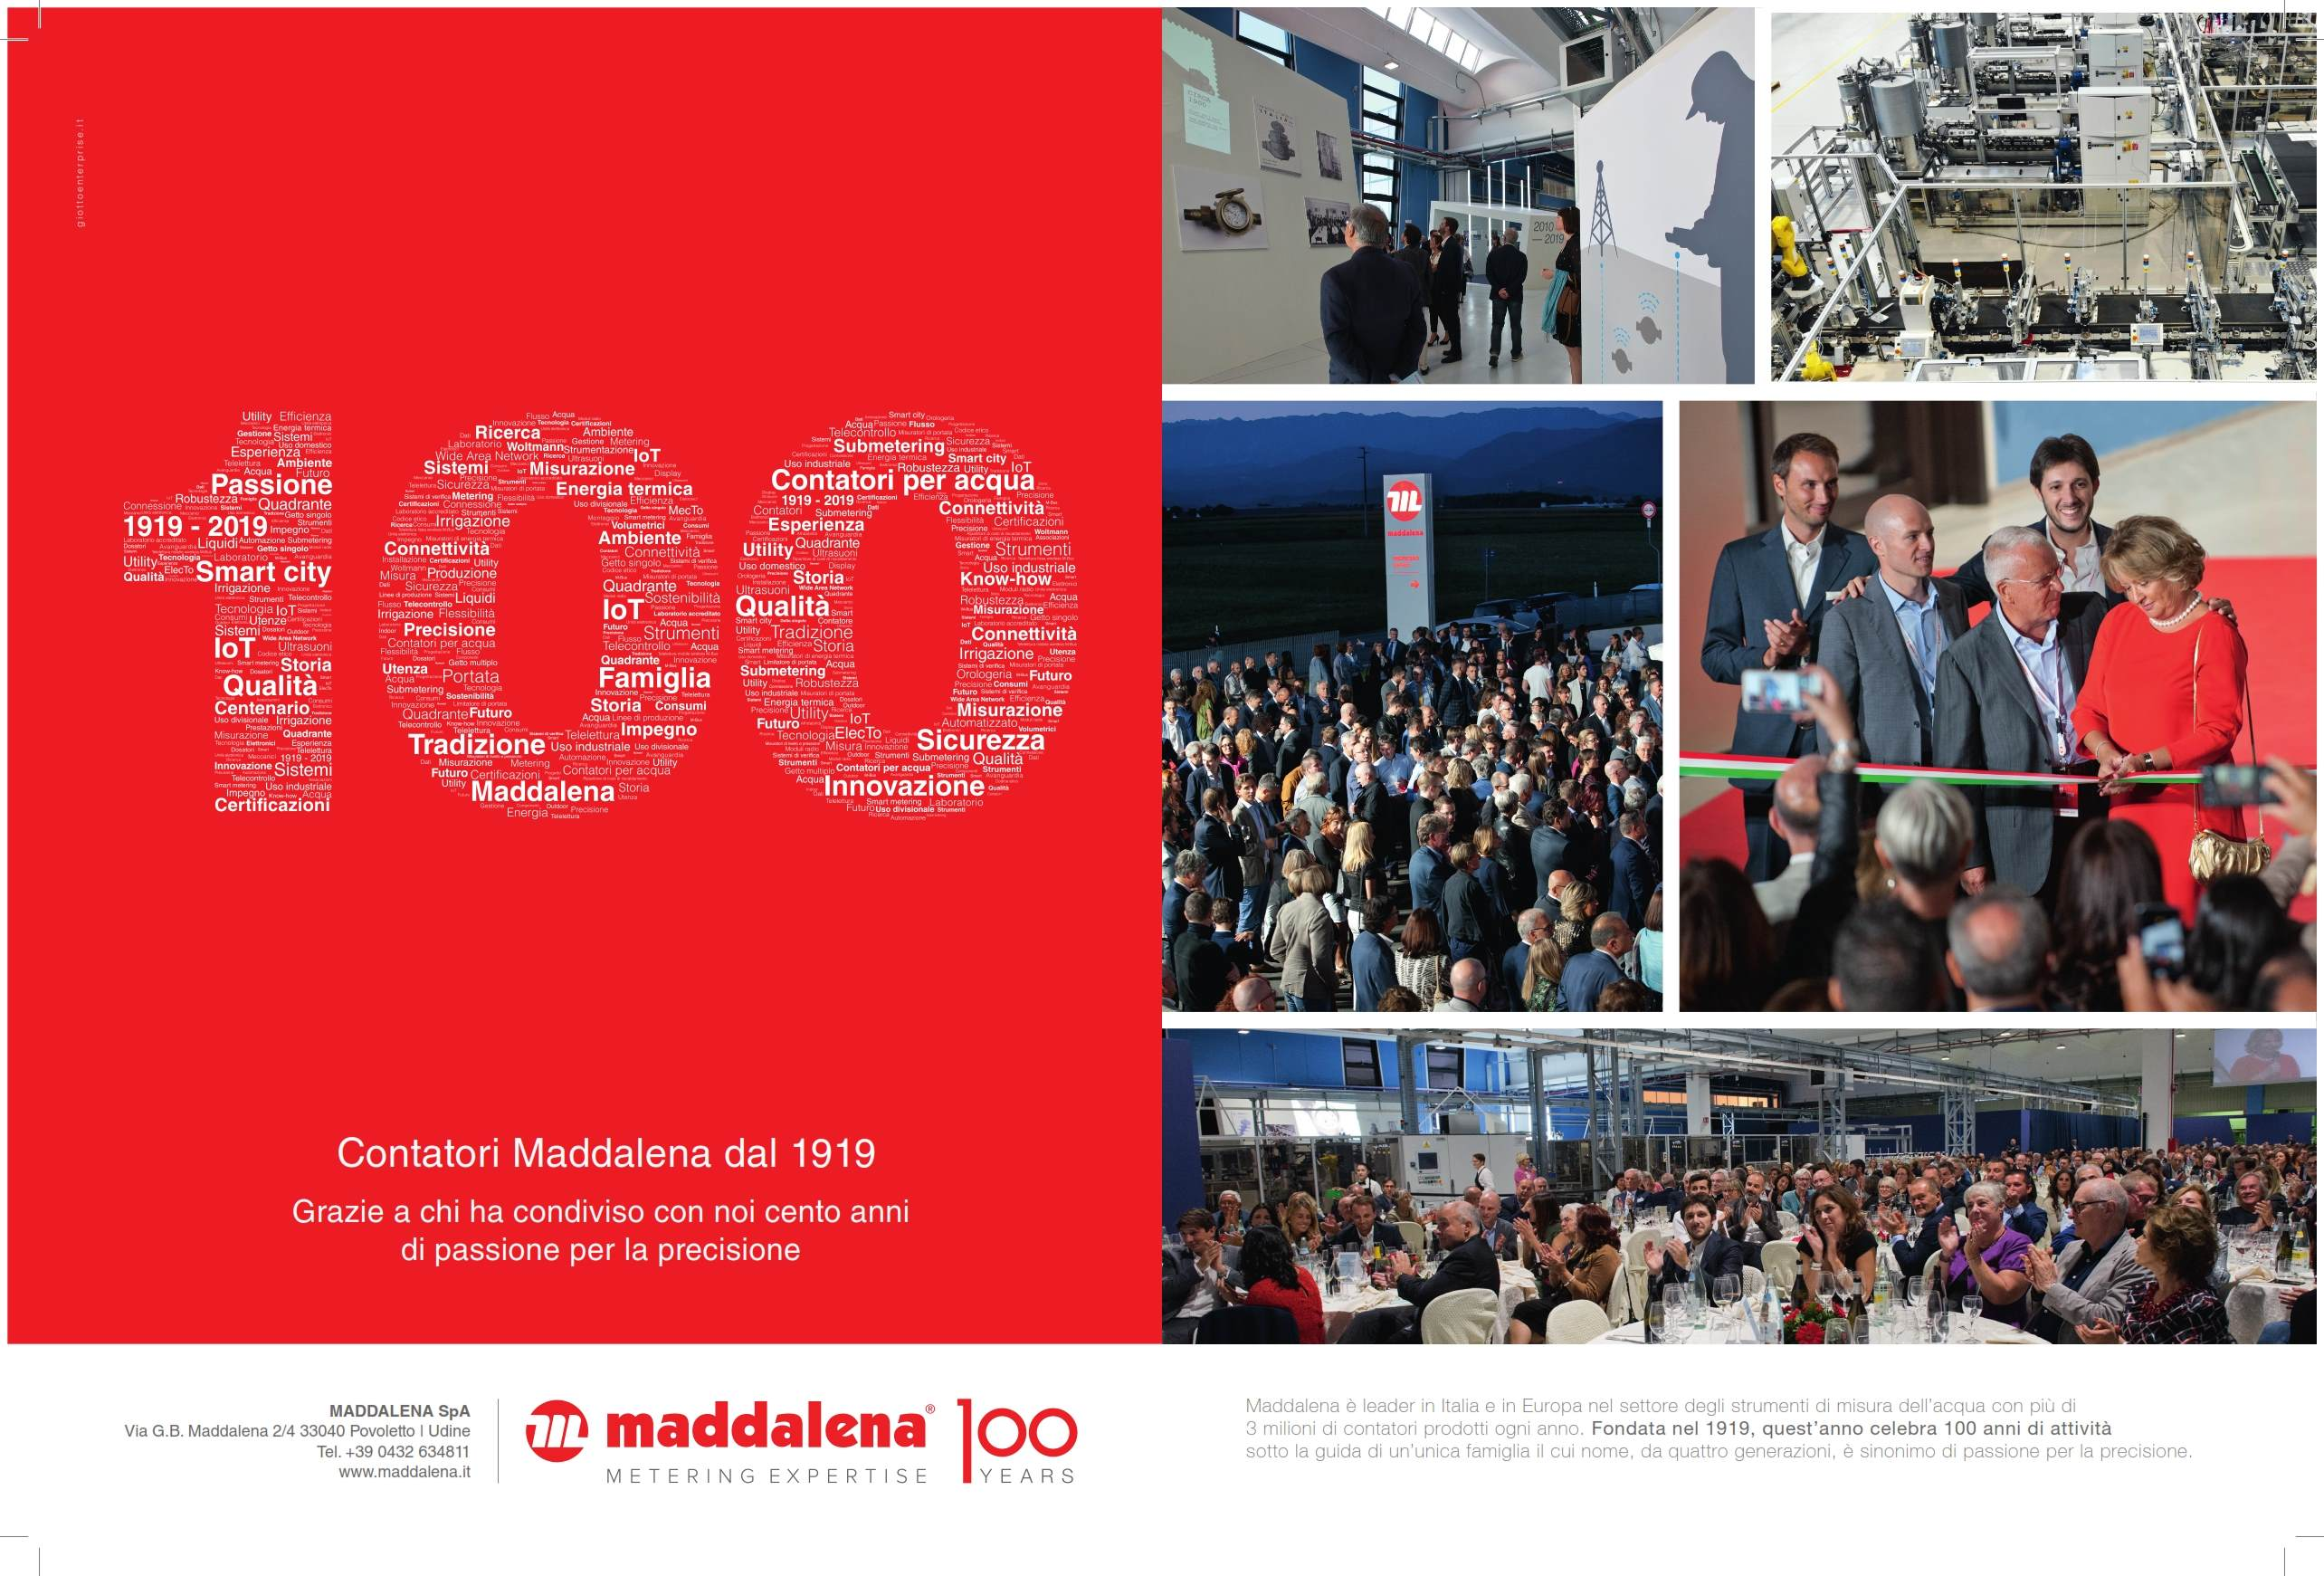 advert maddalena celebrates a century of activity